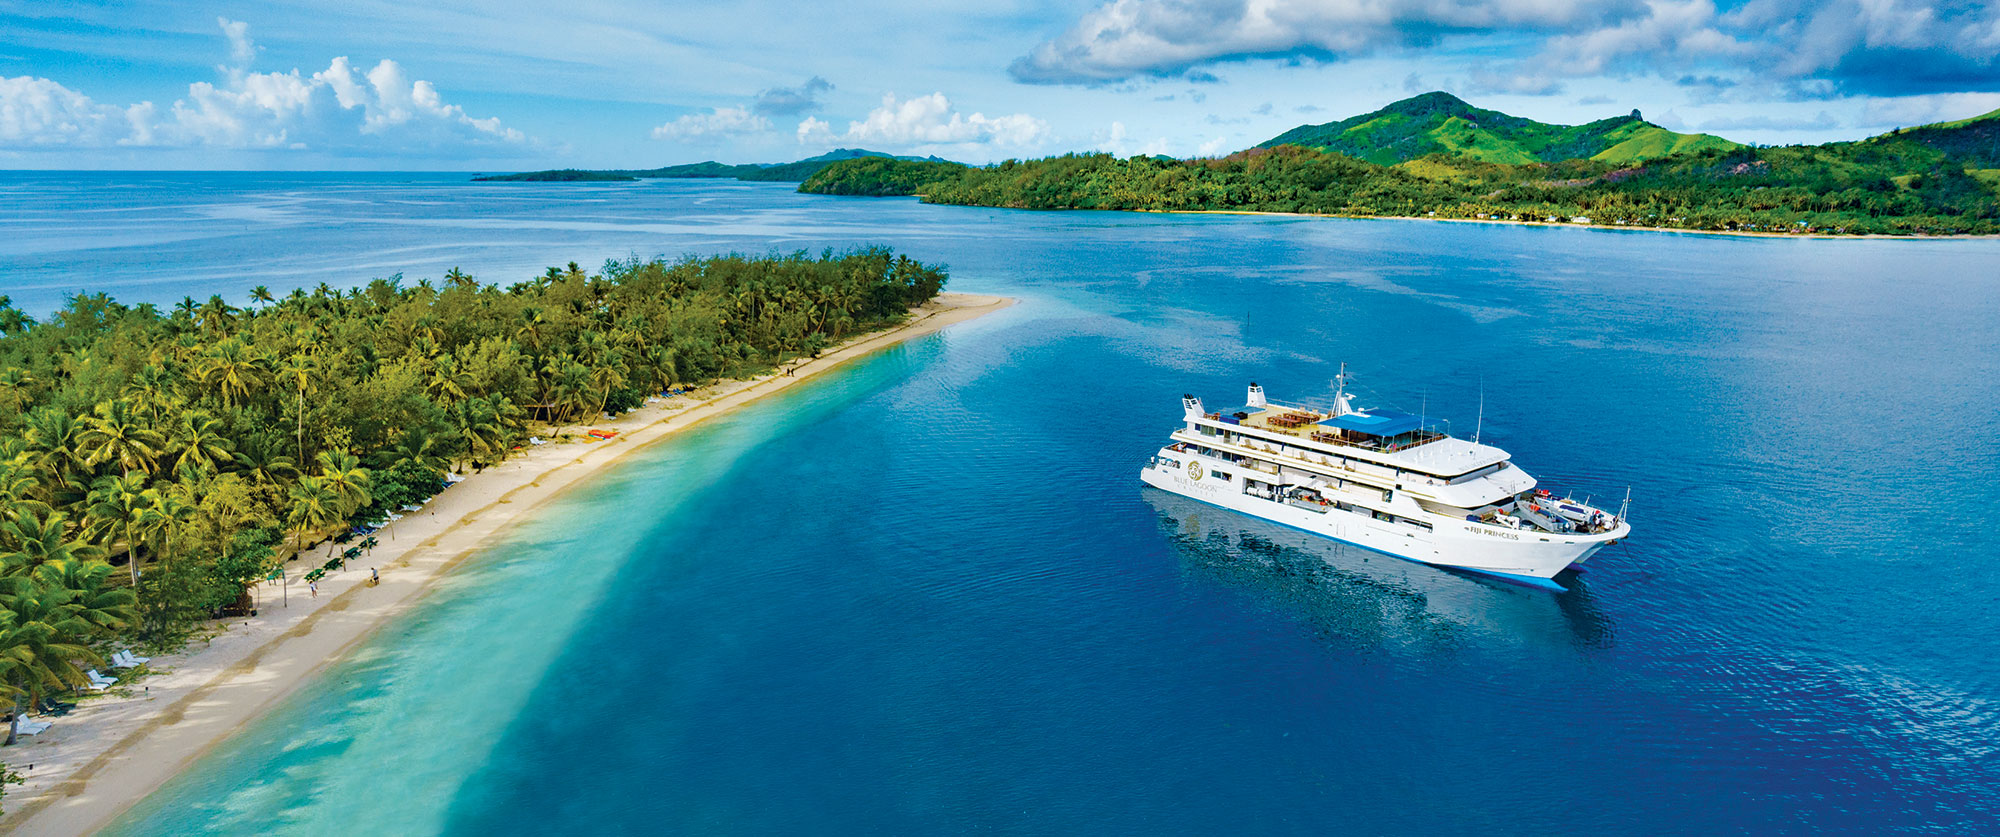 Fiji Cruise Vacation: Fiji Highlights Cruise and Resort Package